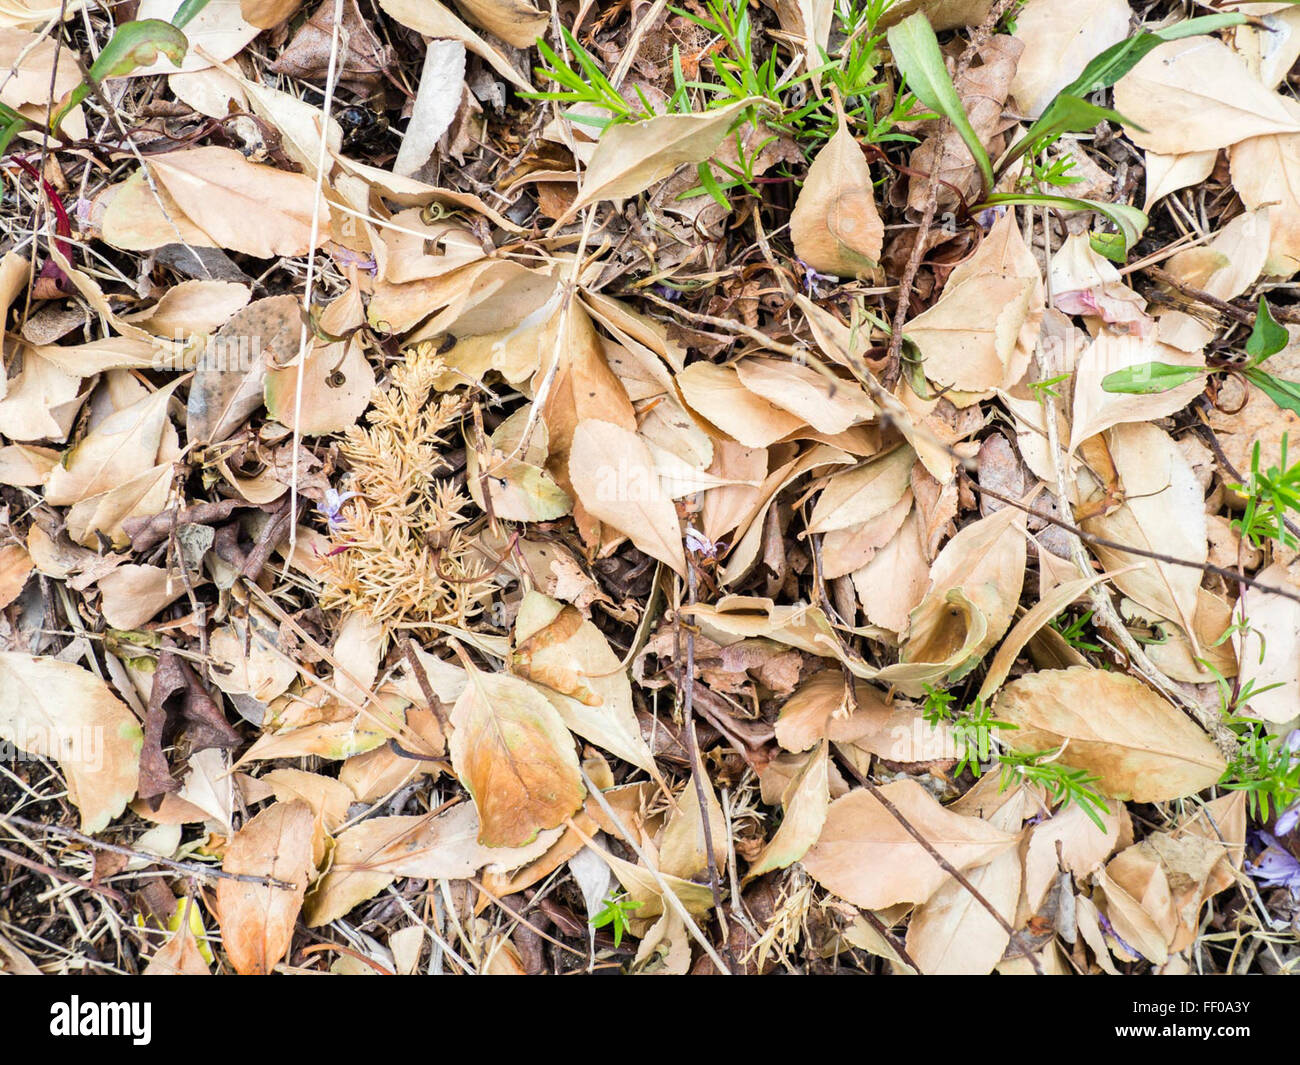 Dry Leaves and Twigs on Ground Dry Leaves and Twigs on